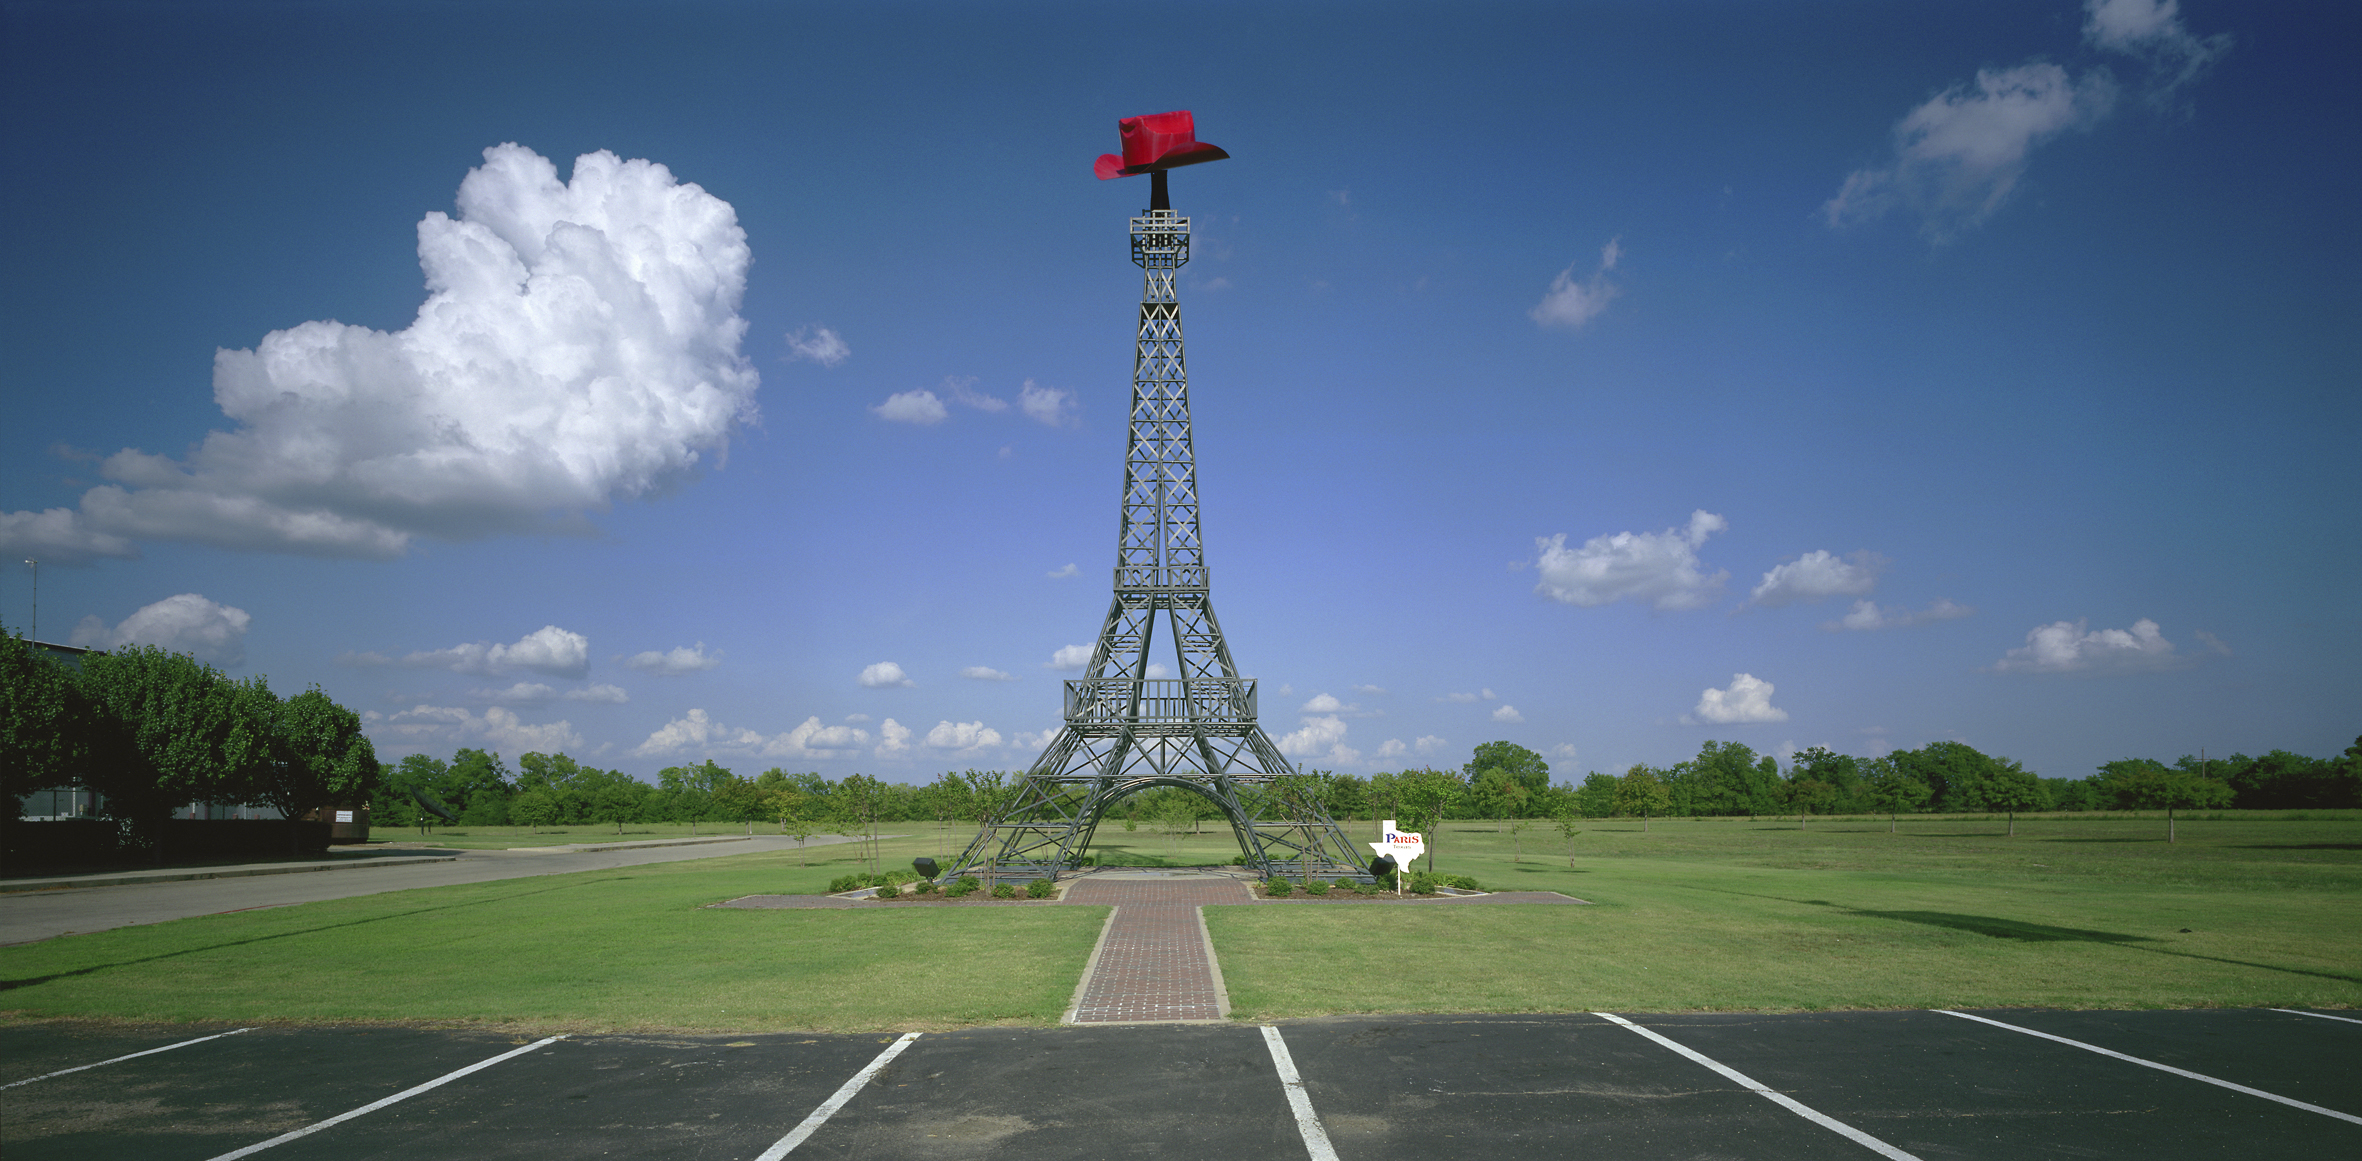 Paris Texas (US 114.4)